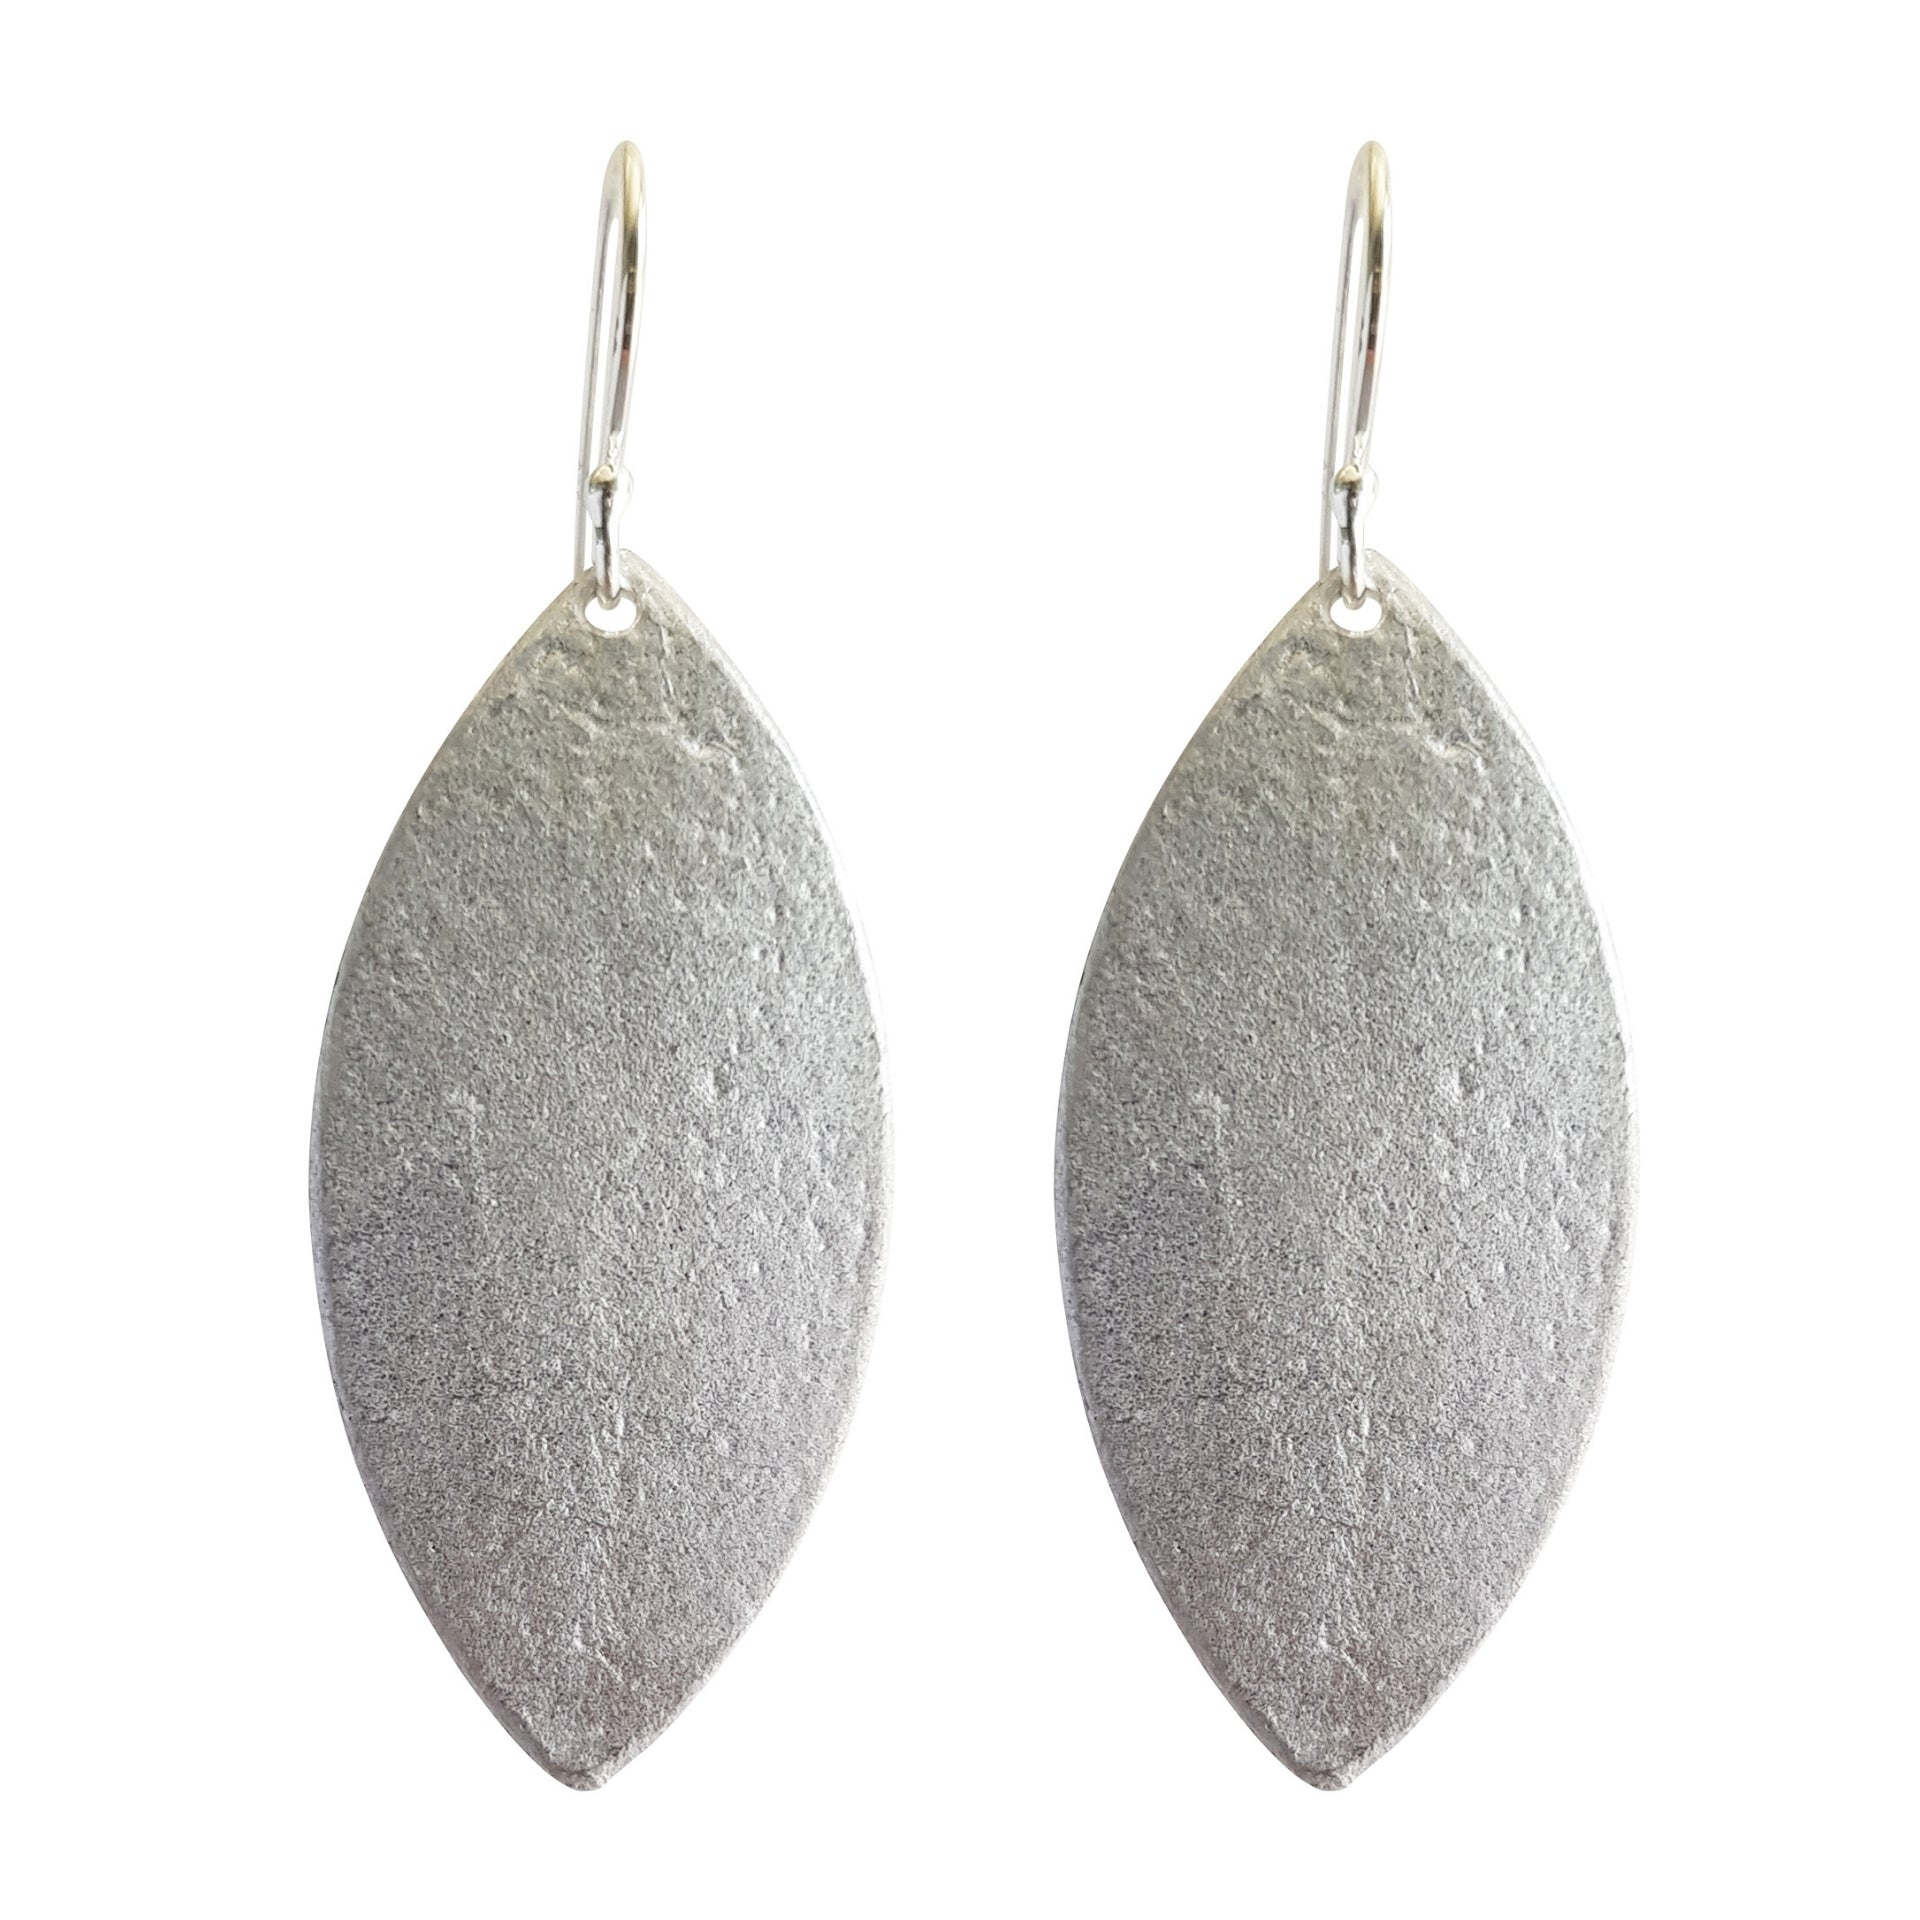 LOVebomb Leaf Shape Sterling Silver Hook Earrings